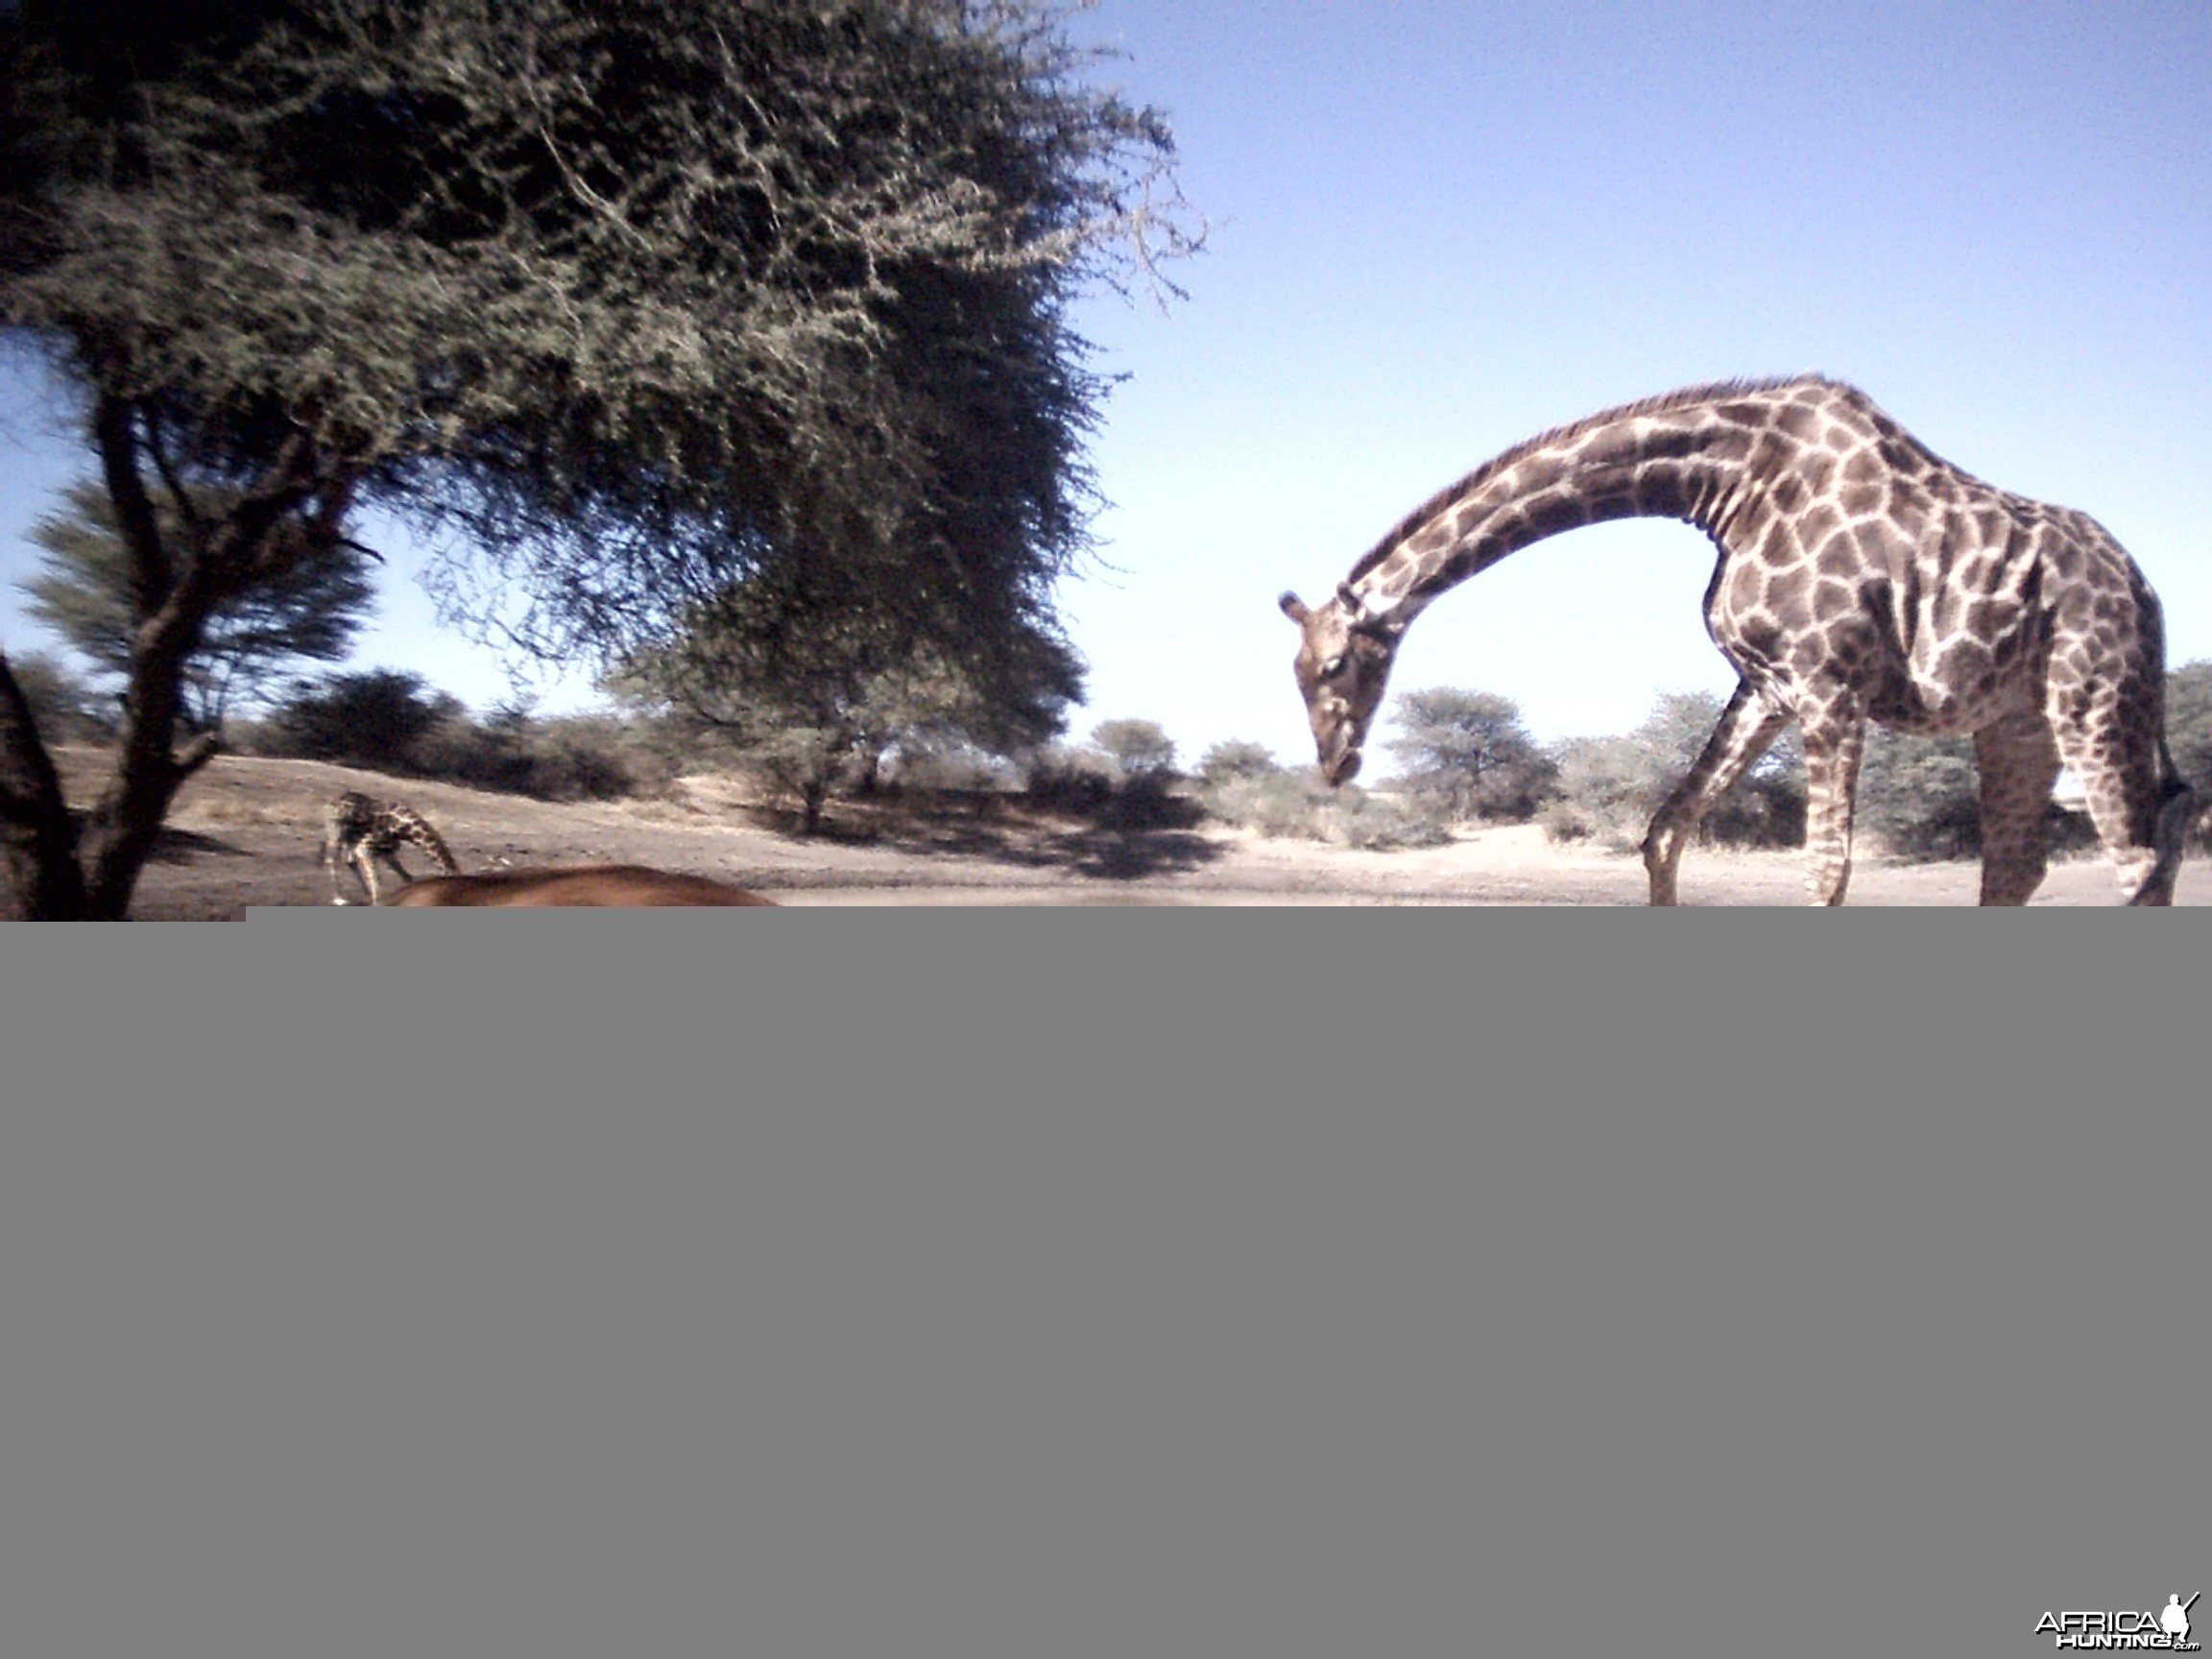 Impala and Giraffe, Namibia